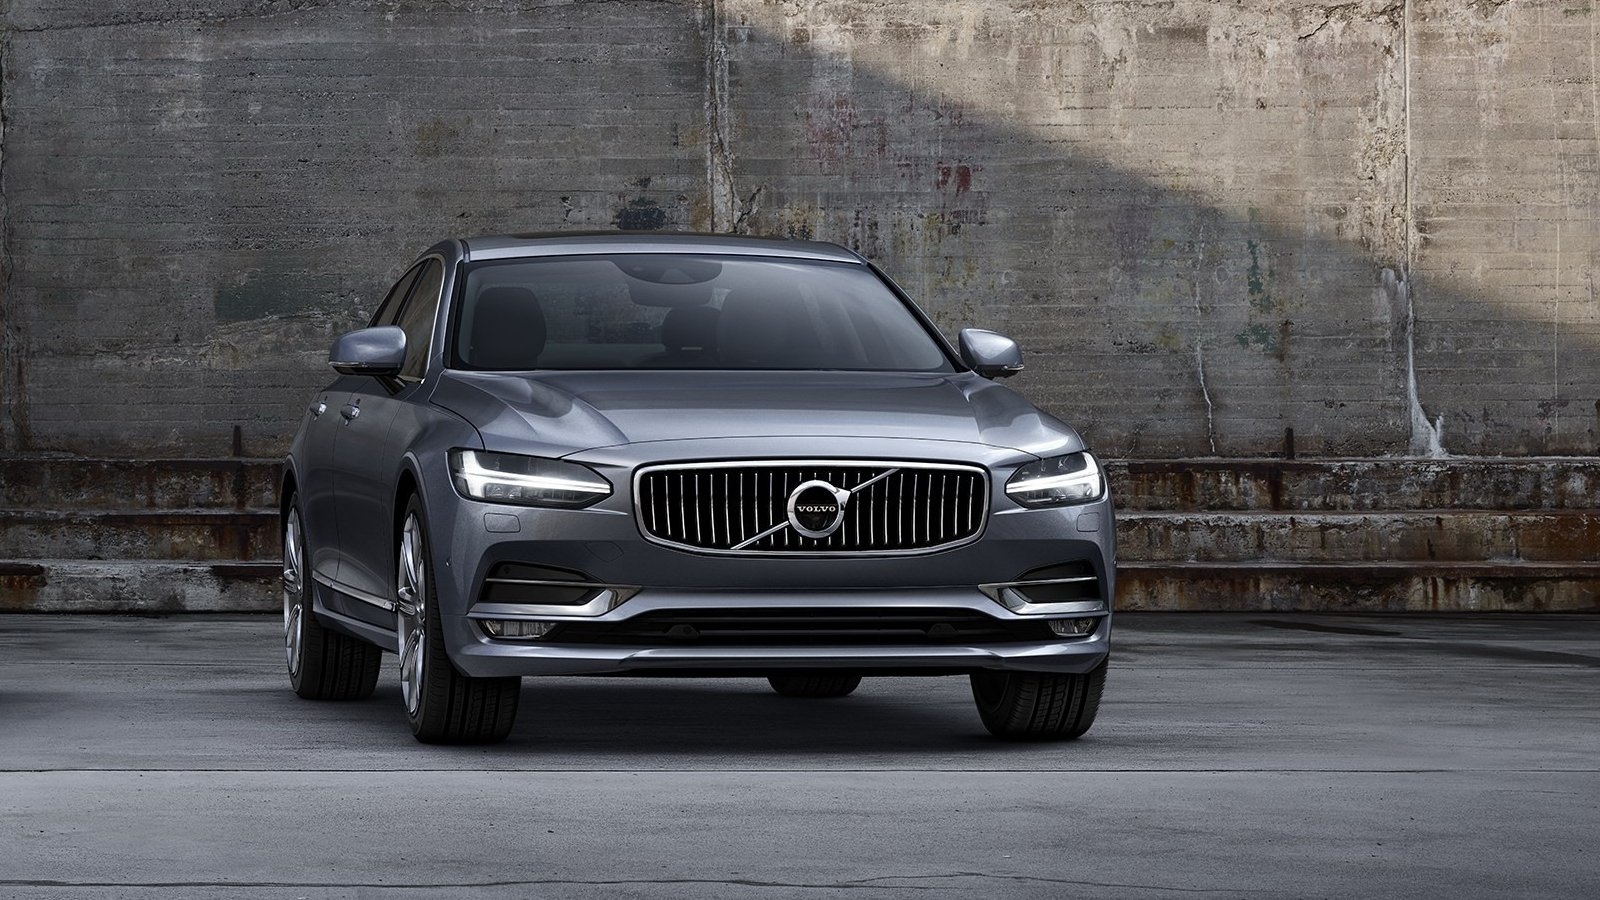 2016 Volvo S90 And V90 With Polestar Performance Optimization Package Pictures, Photos ...